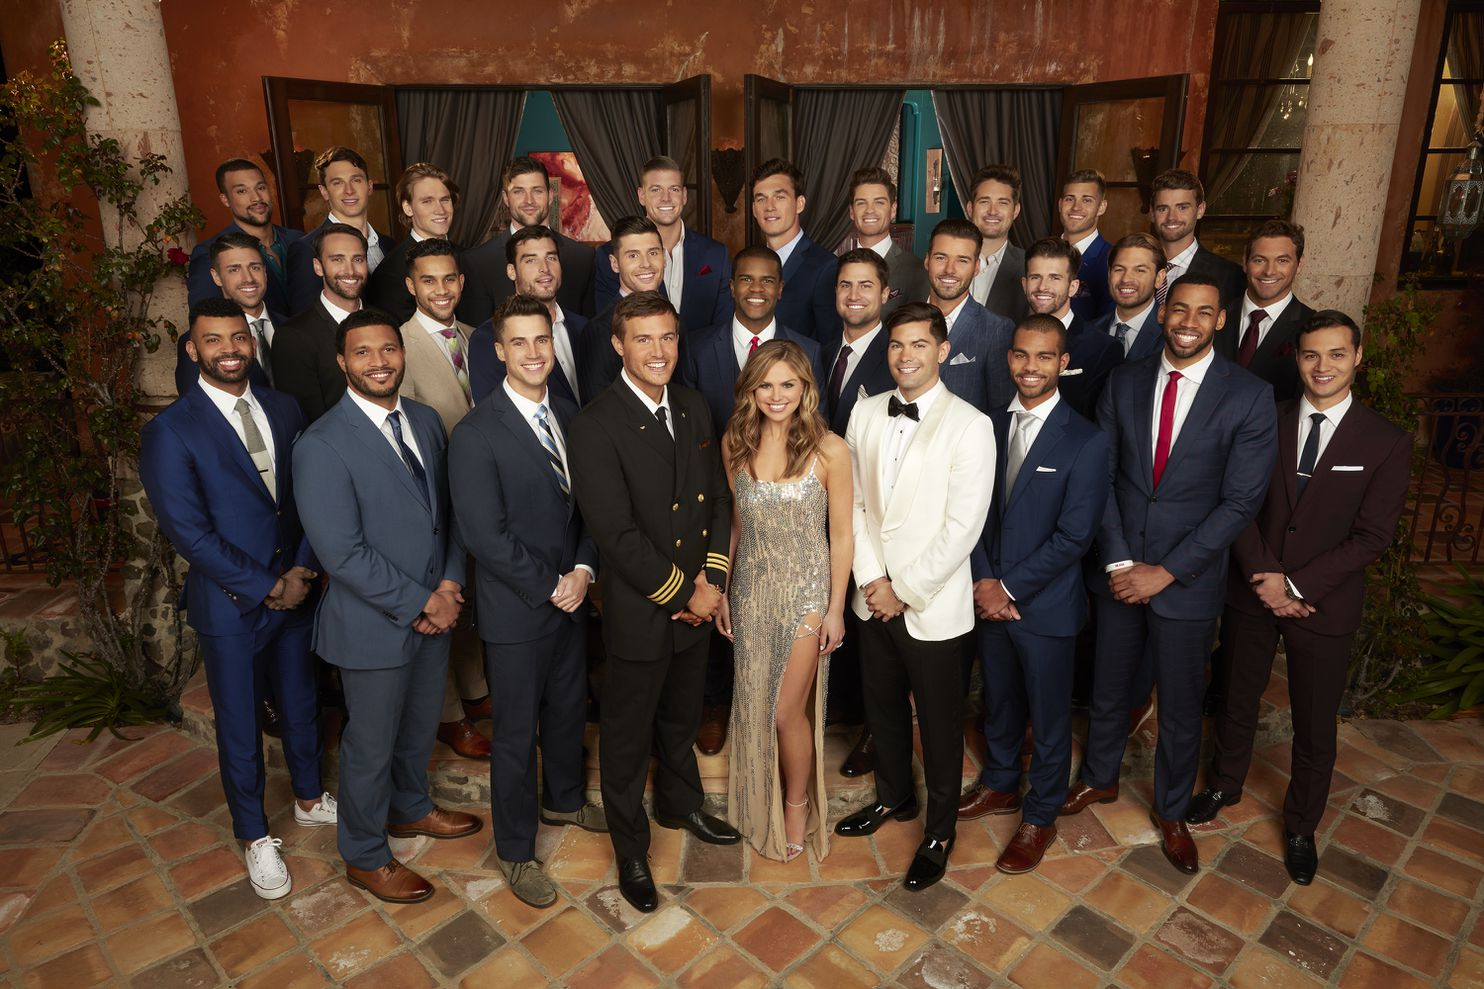 Hannah Brown Center Is The Star Of The 15th Season Of The Bachelorette Which Premieres Monday On Abc Craig Sjodin Abc